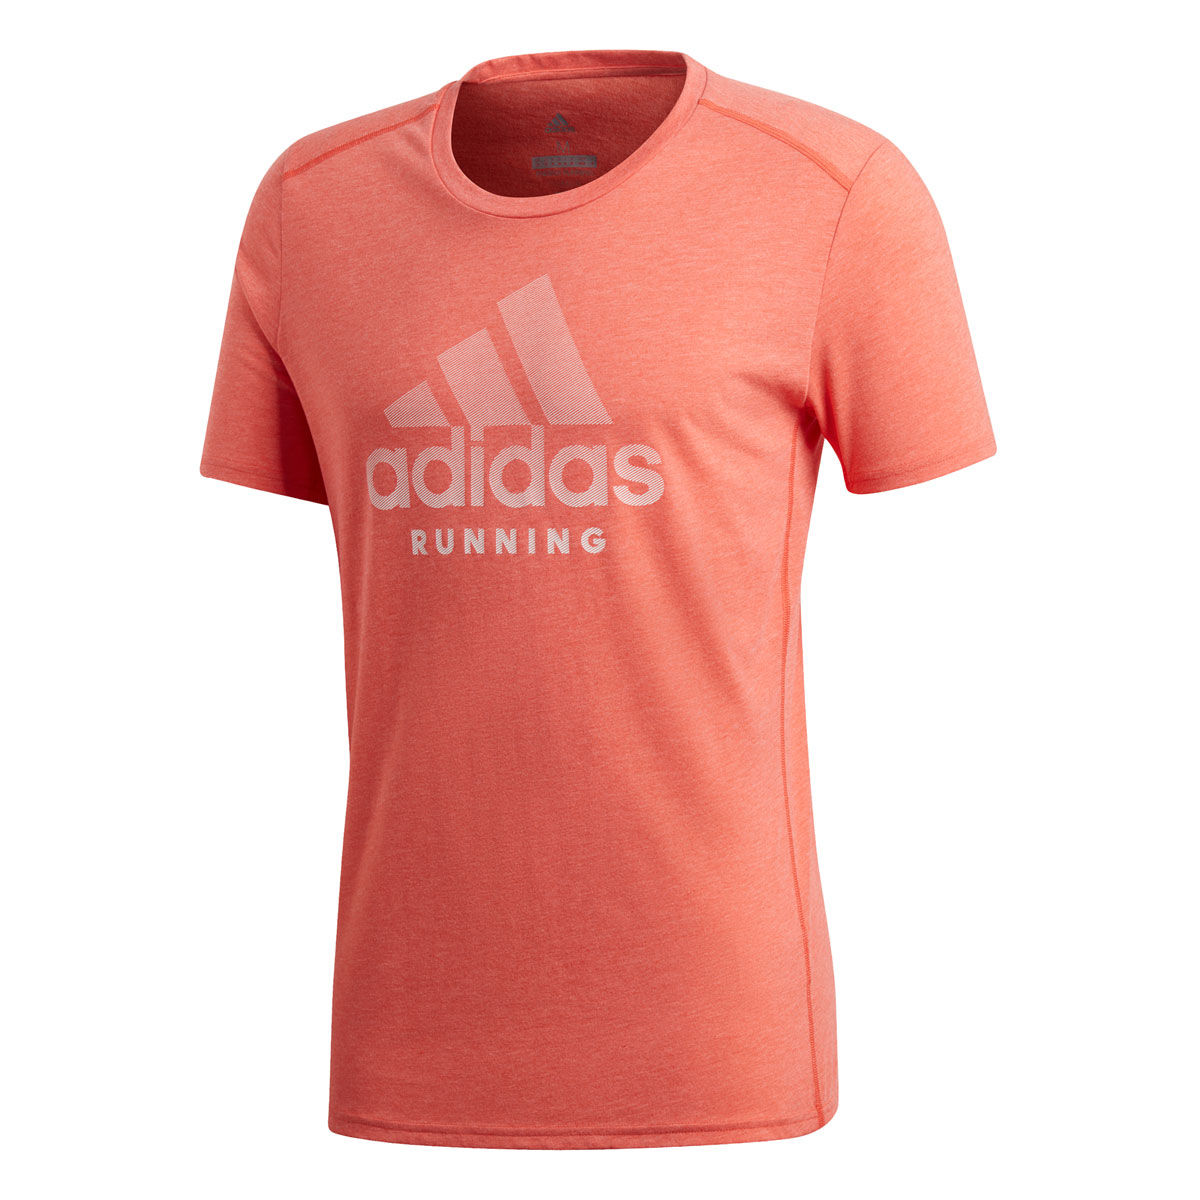 adidas Response Soft Mens Run Graphic T-Shirt